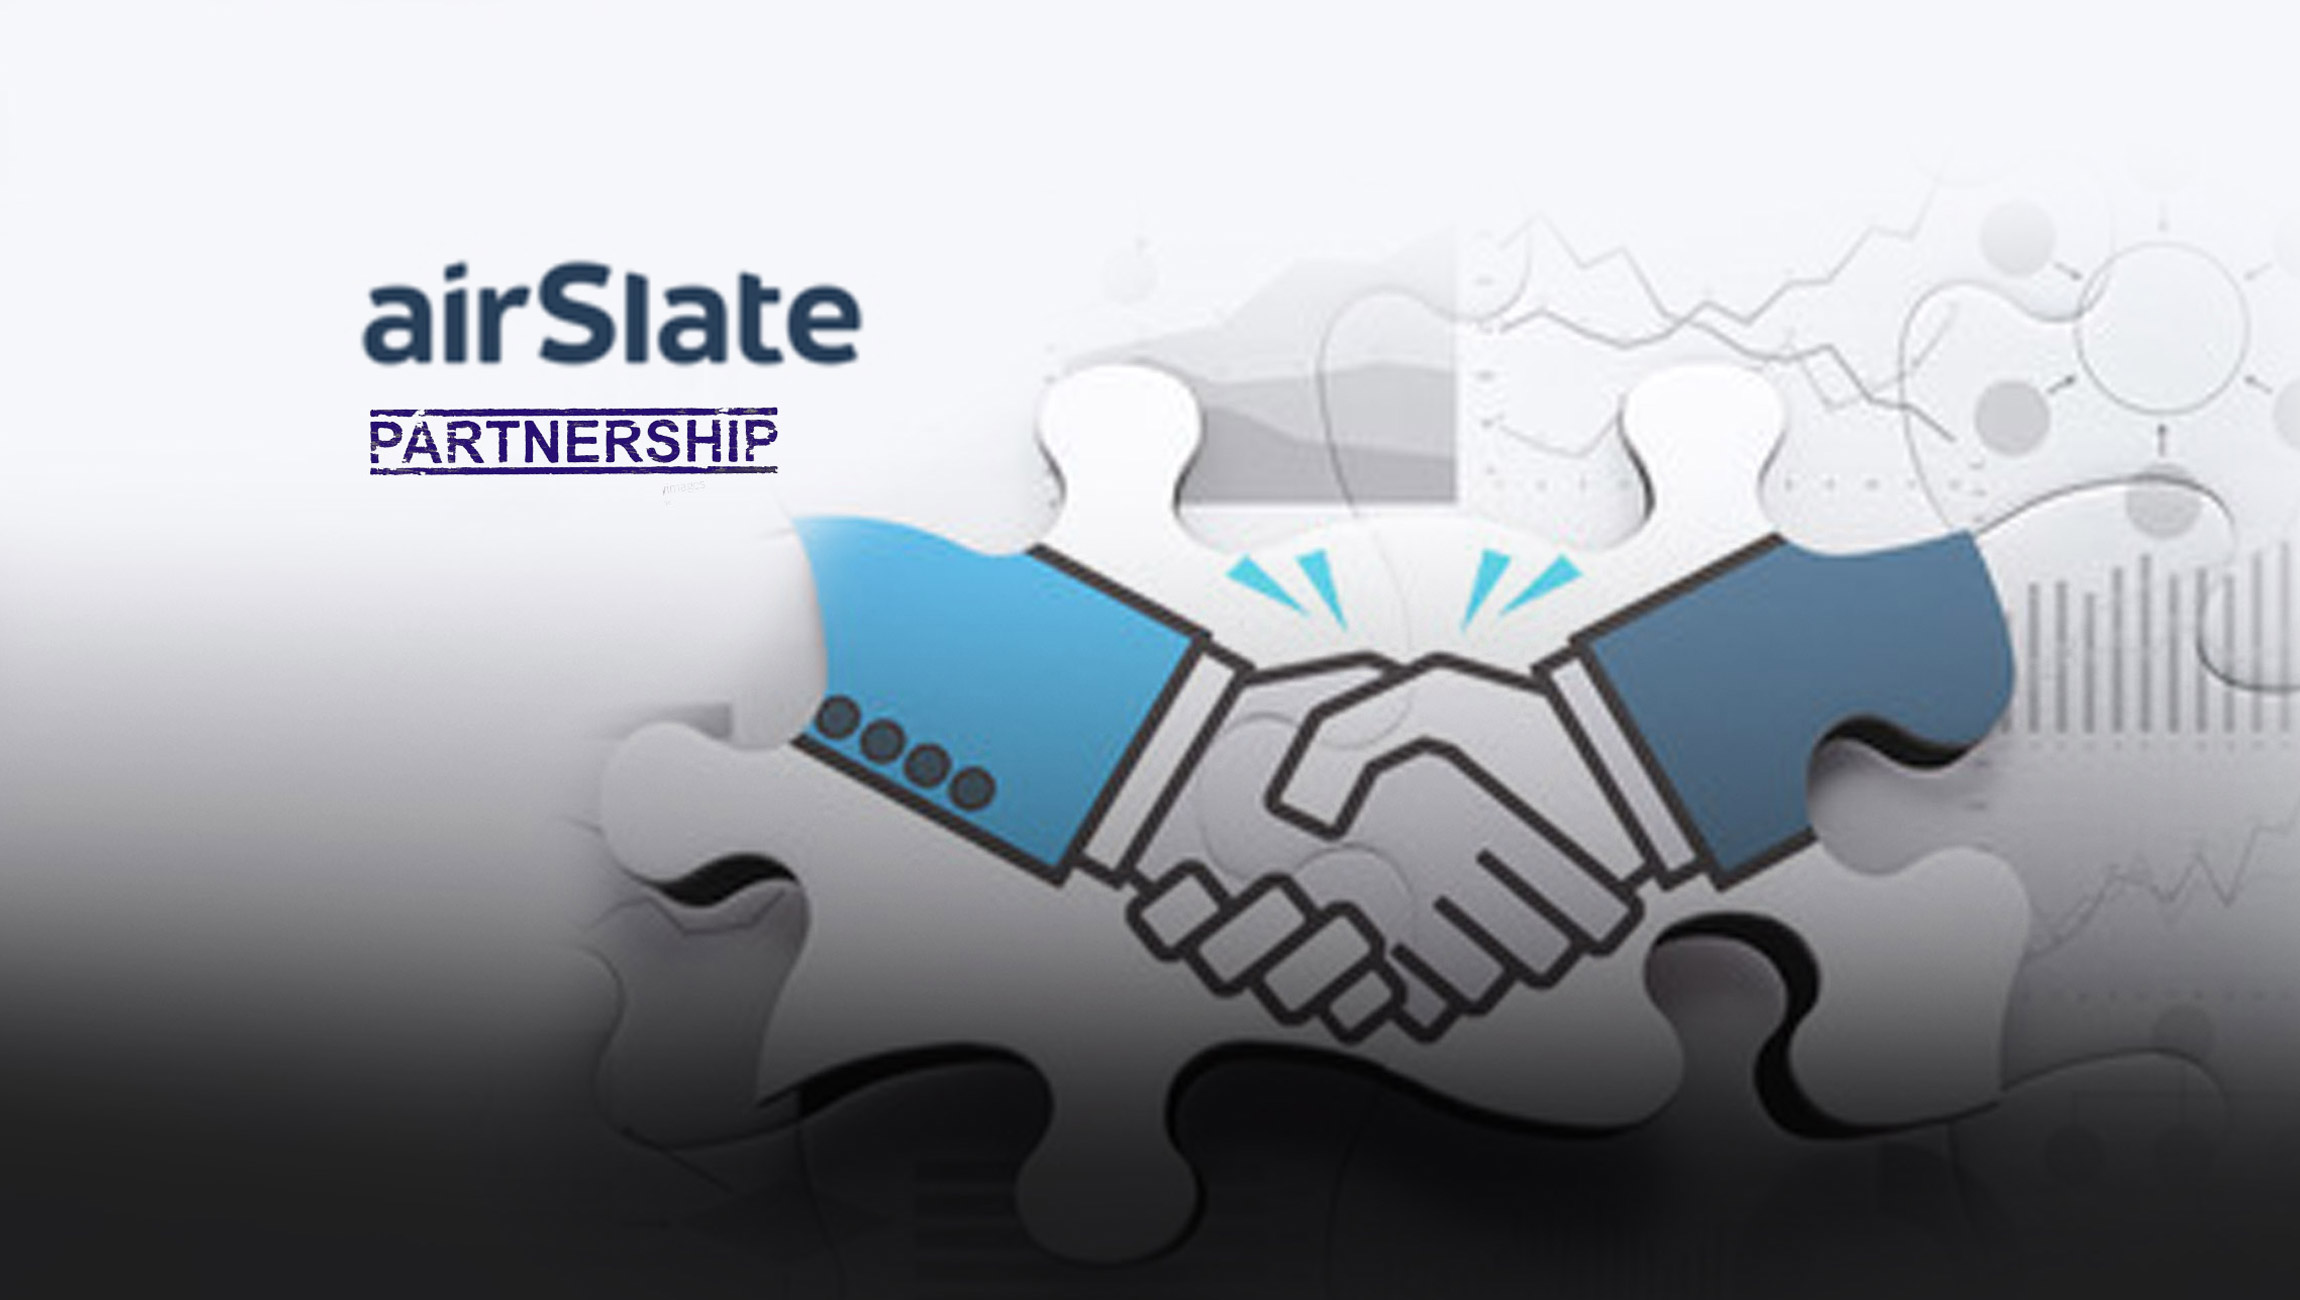 airSlate Partners with RentTango to Improve Electronic Signature Within the Real Estate Industry